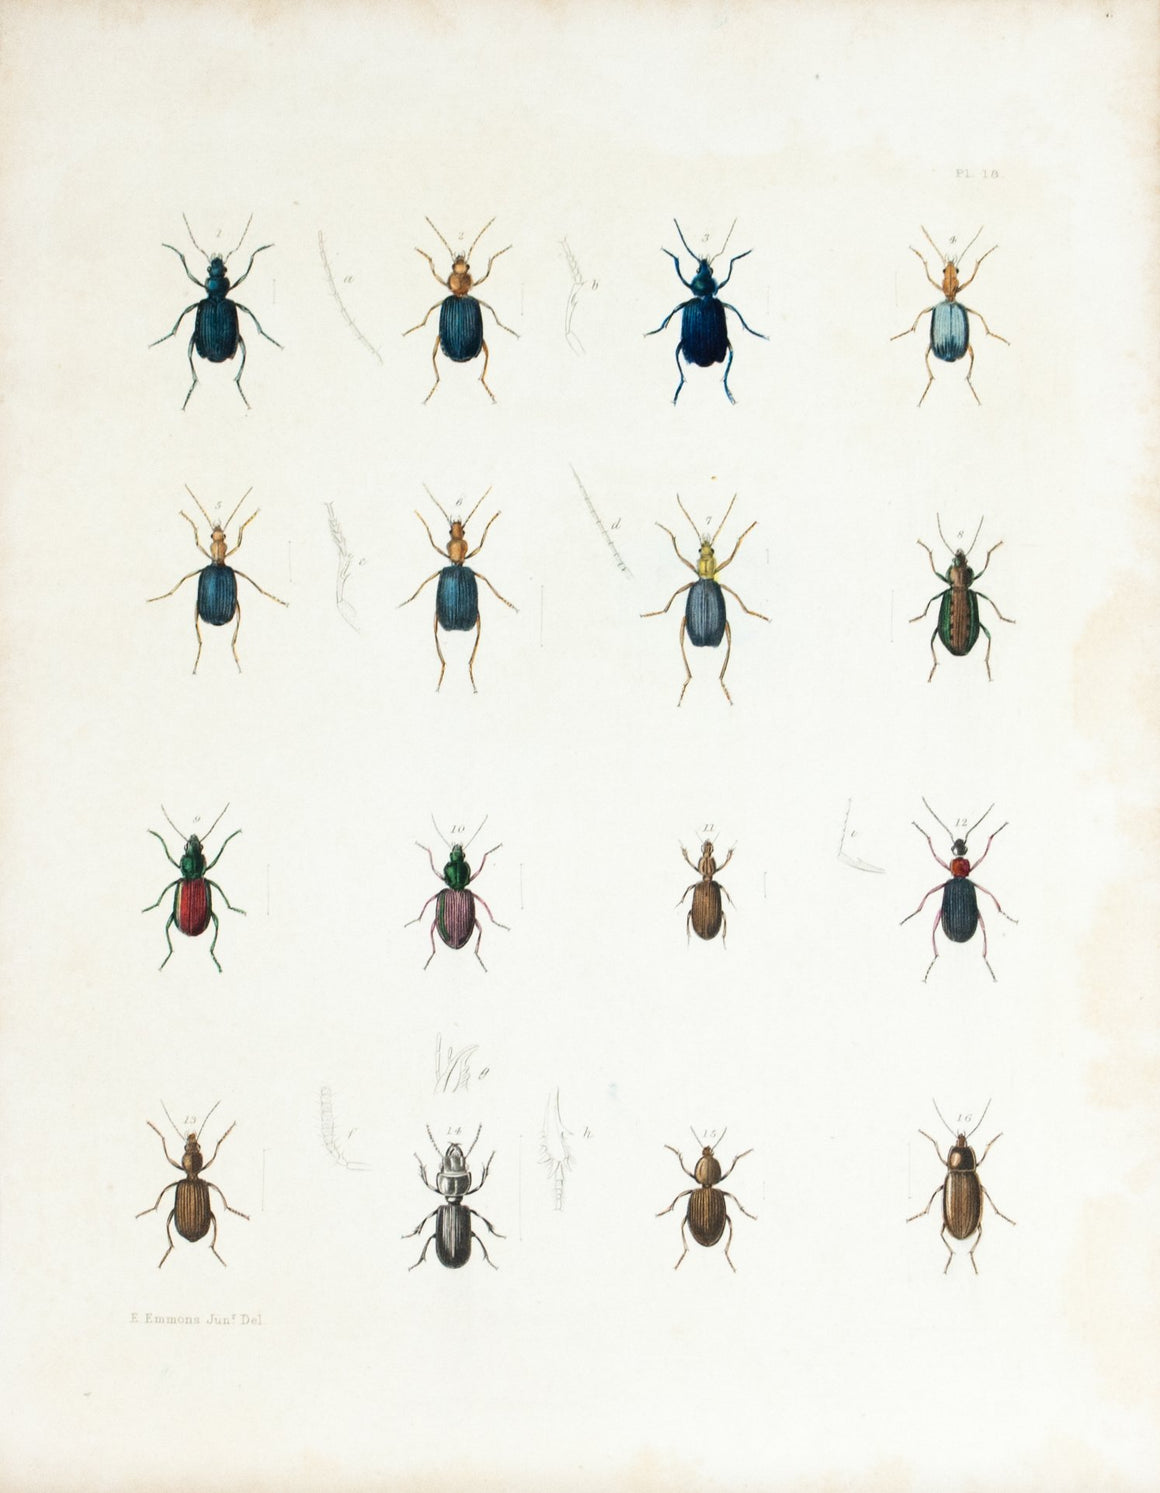 1854 Plate 18 - Ground Beetle - Emmons